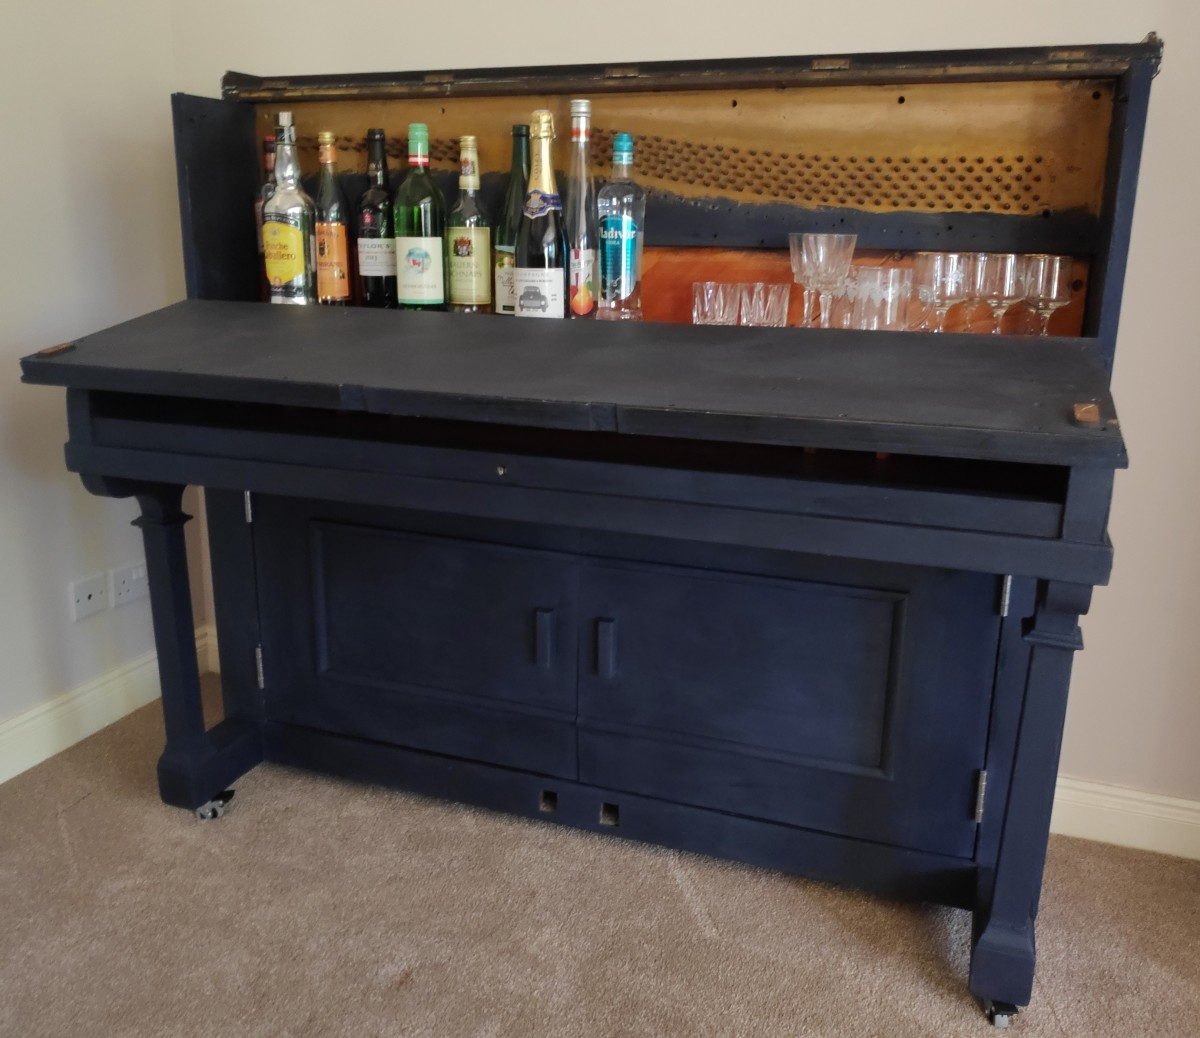 How We Turned an Old Piano Into a Drinks Cabinet